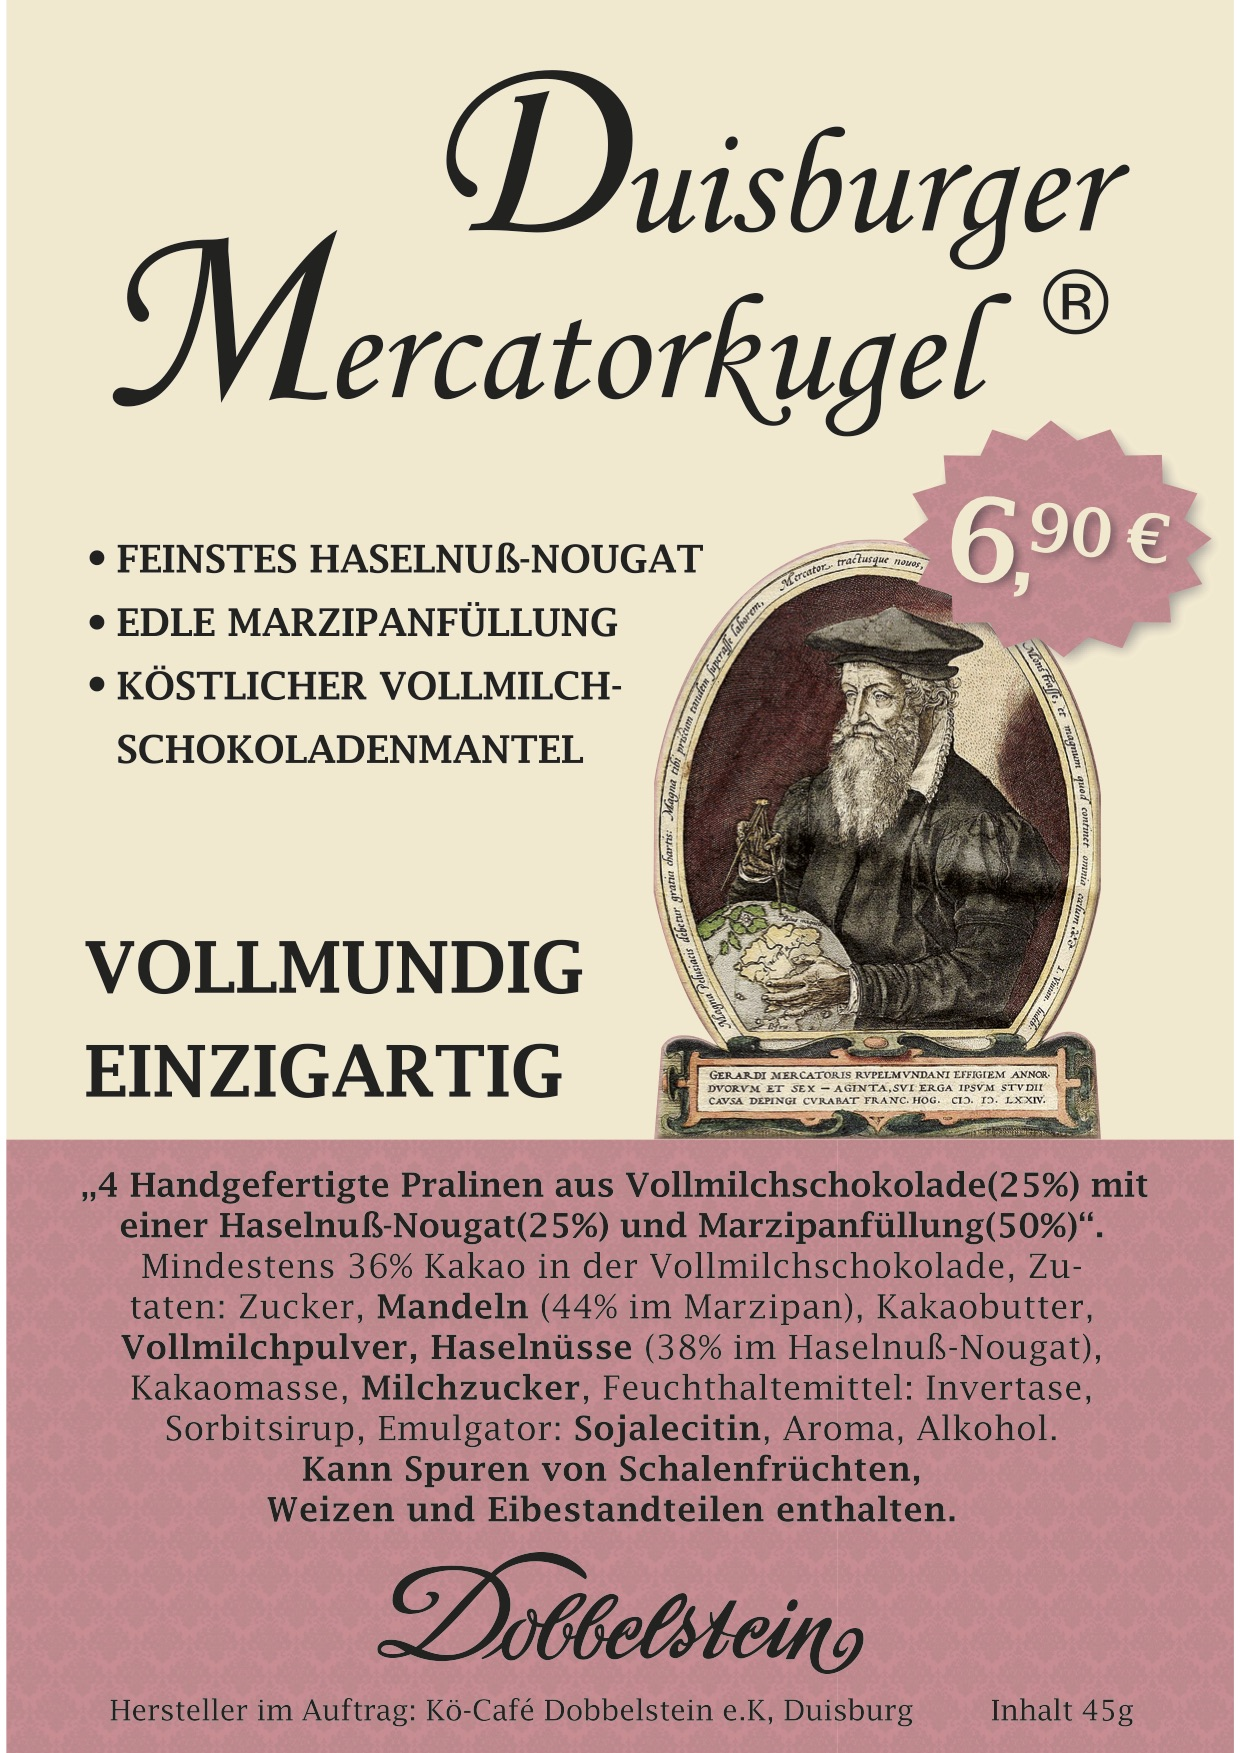 mercatorkugel-preisschild-690-e